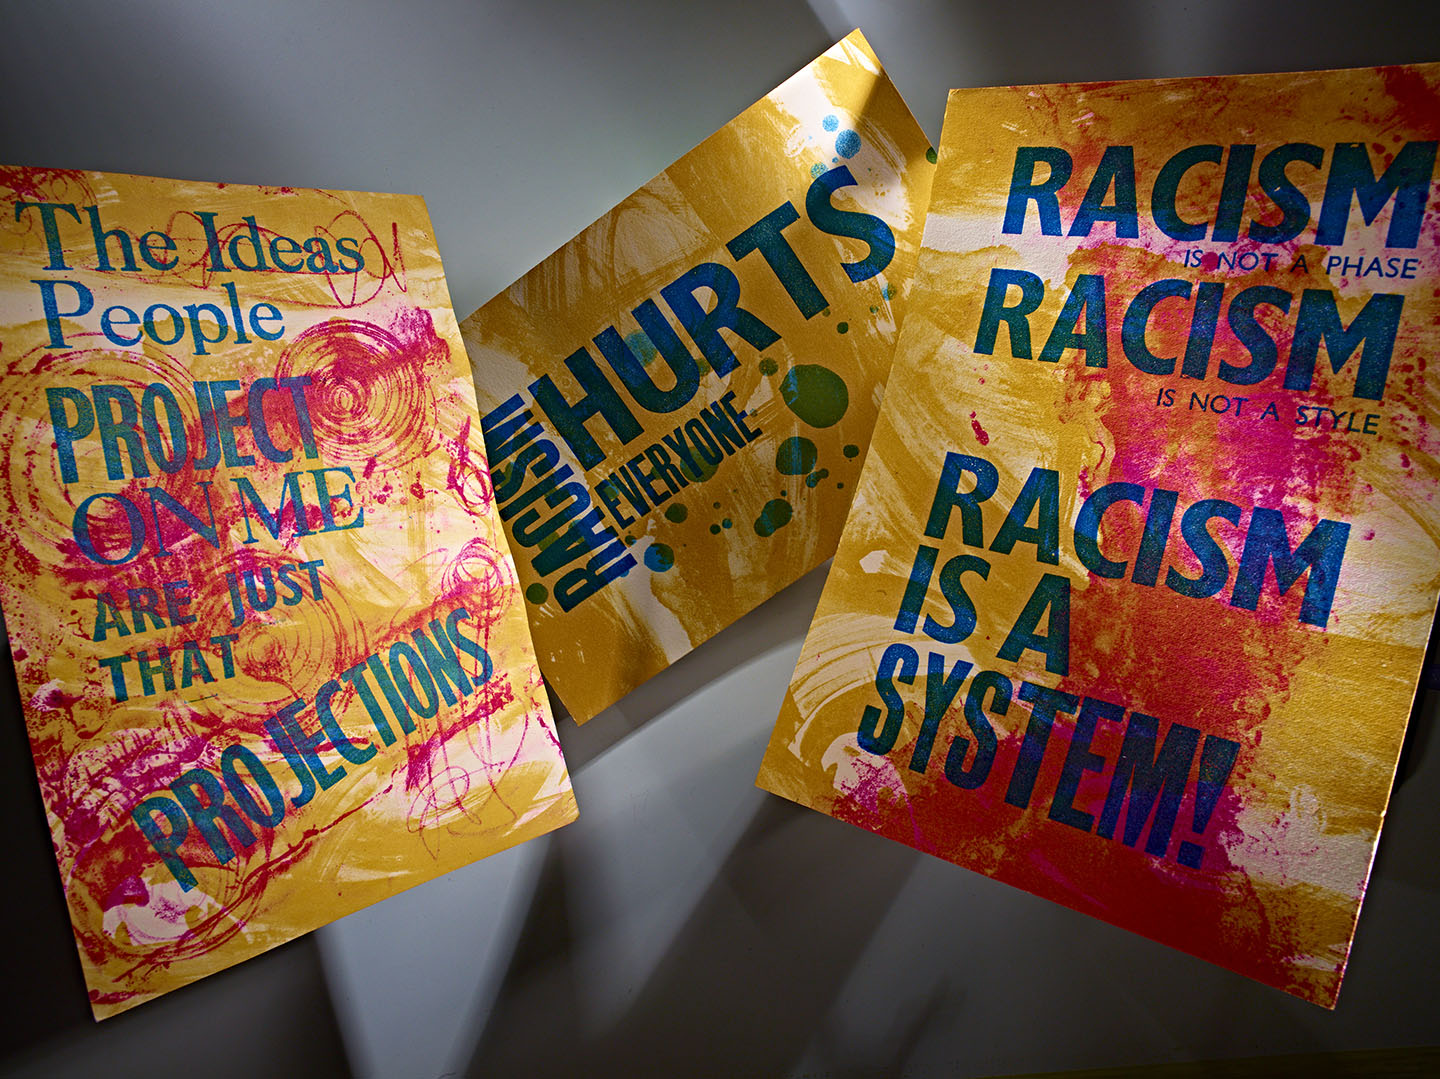 Easton-Racism-1440px-wide-4